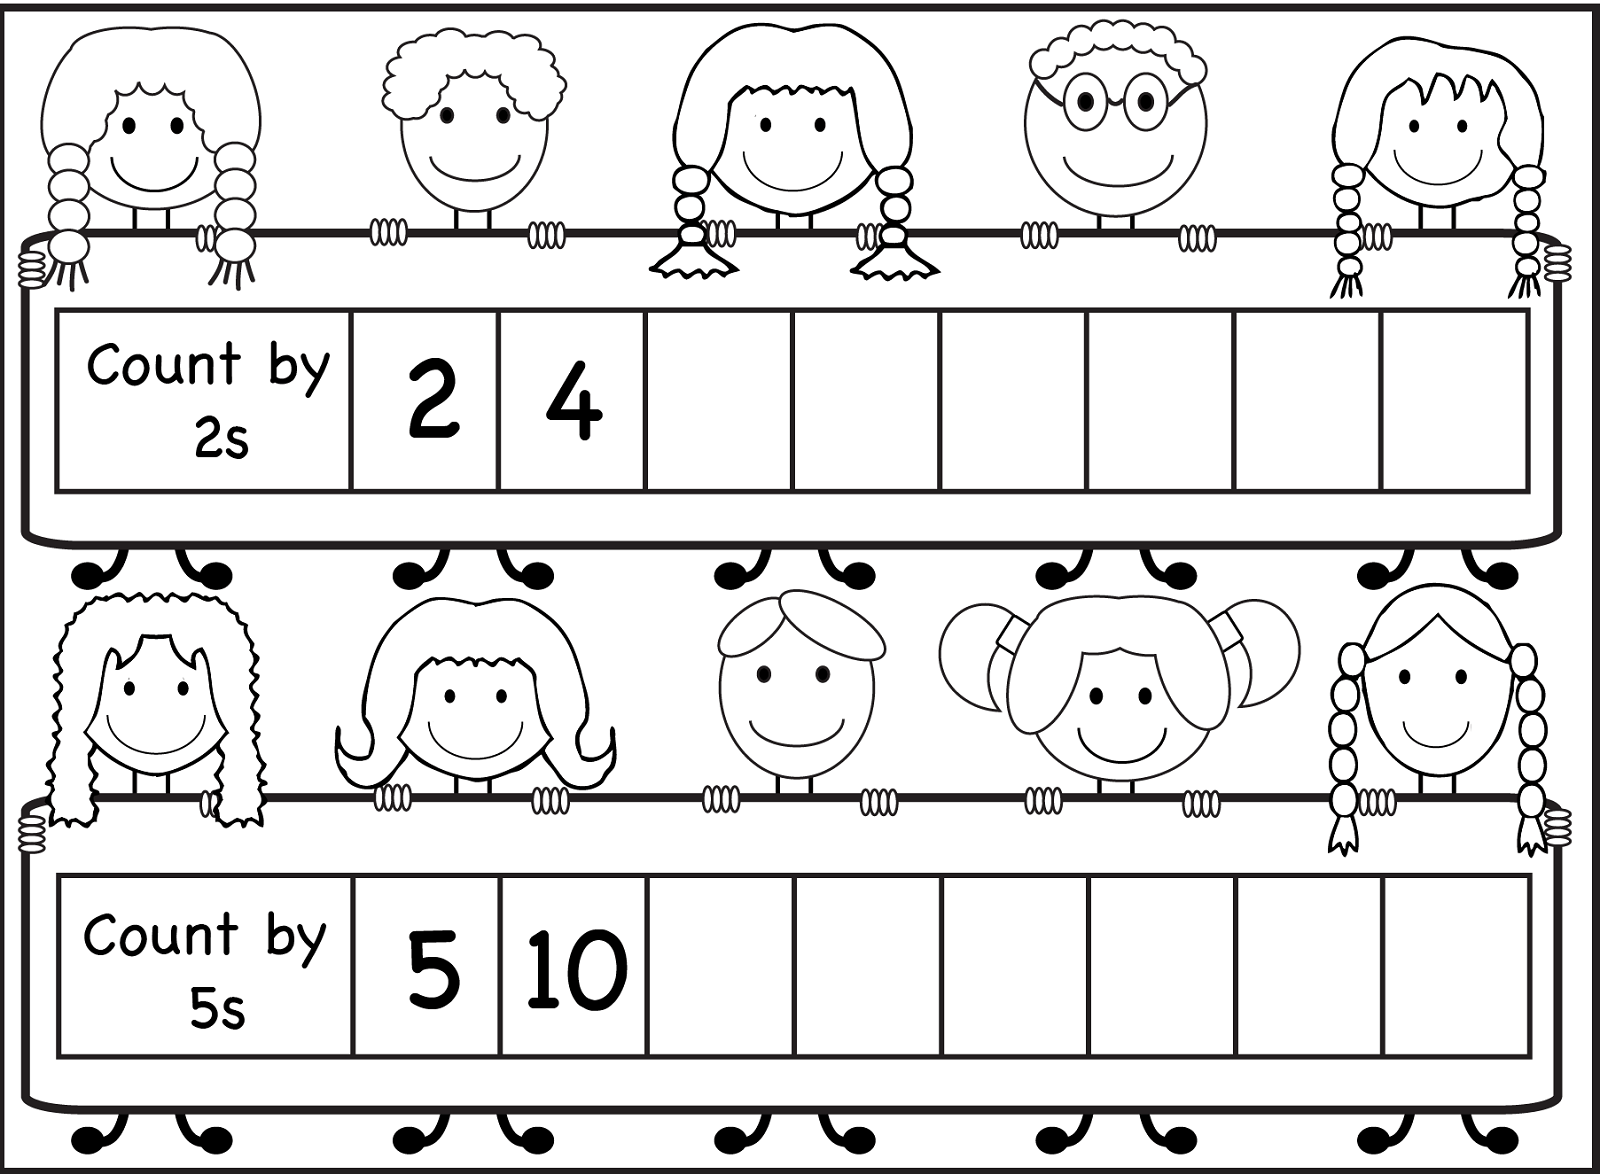 Counting Worksheets For Kids